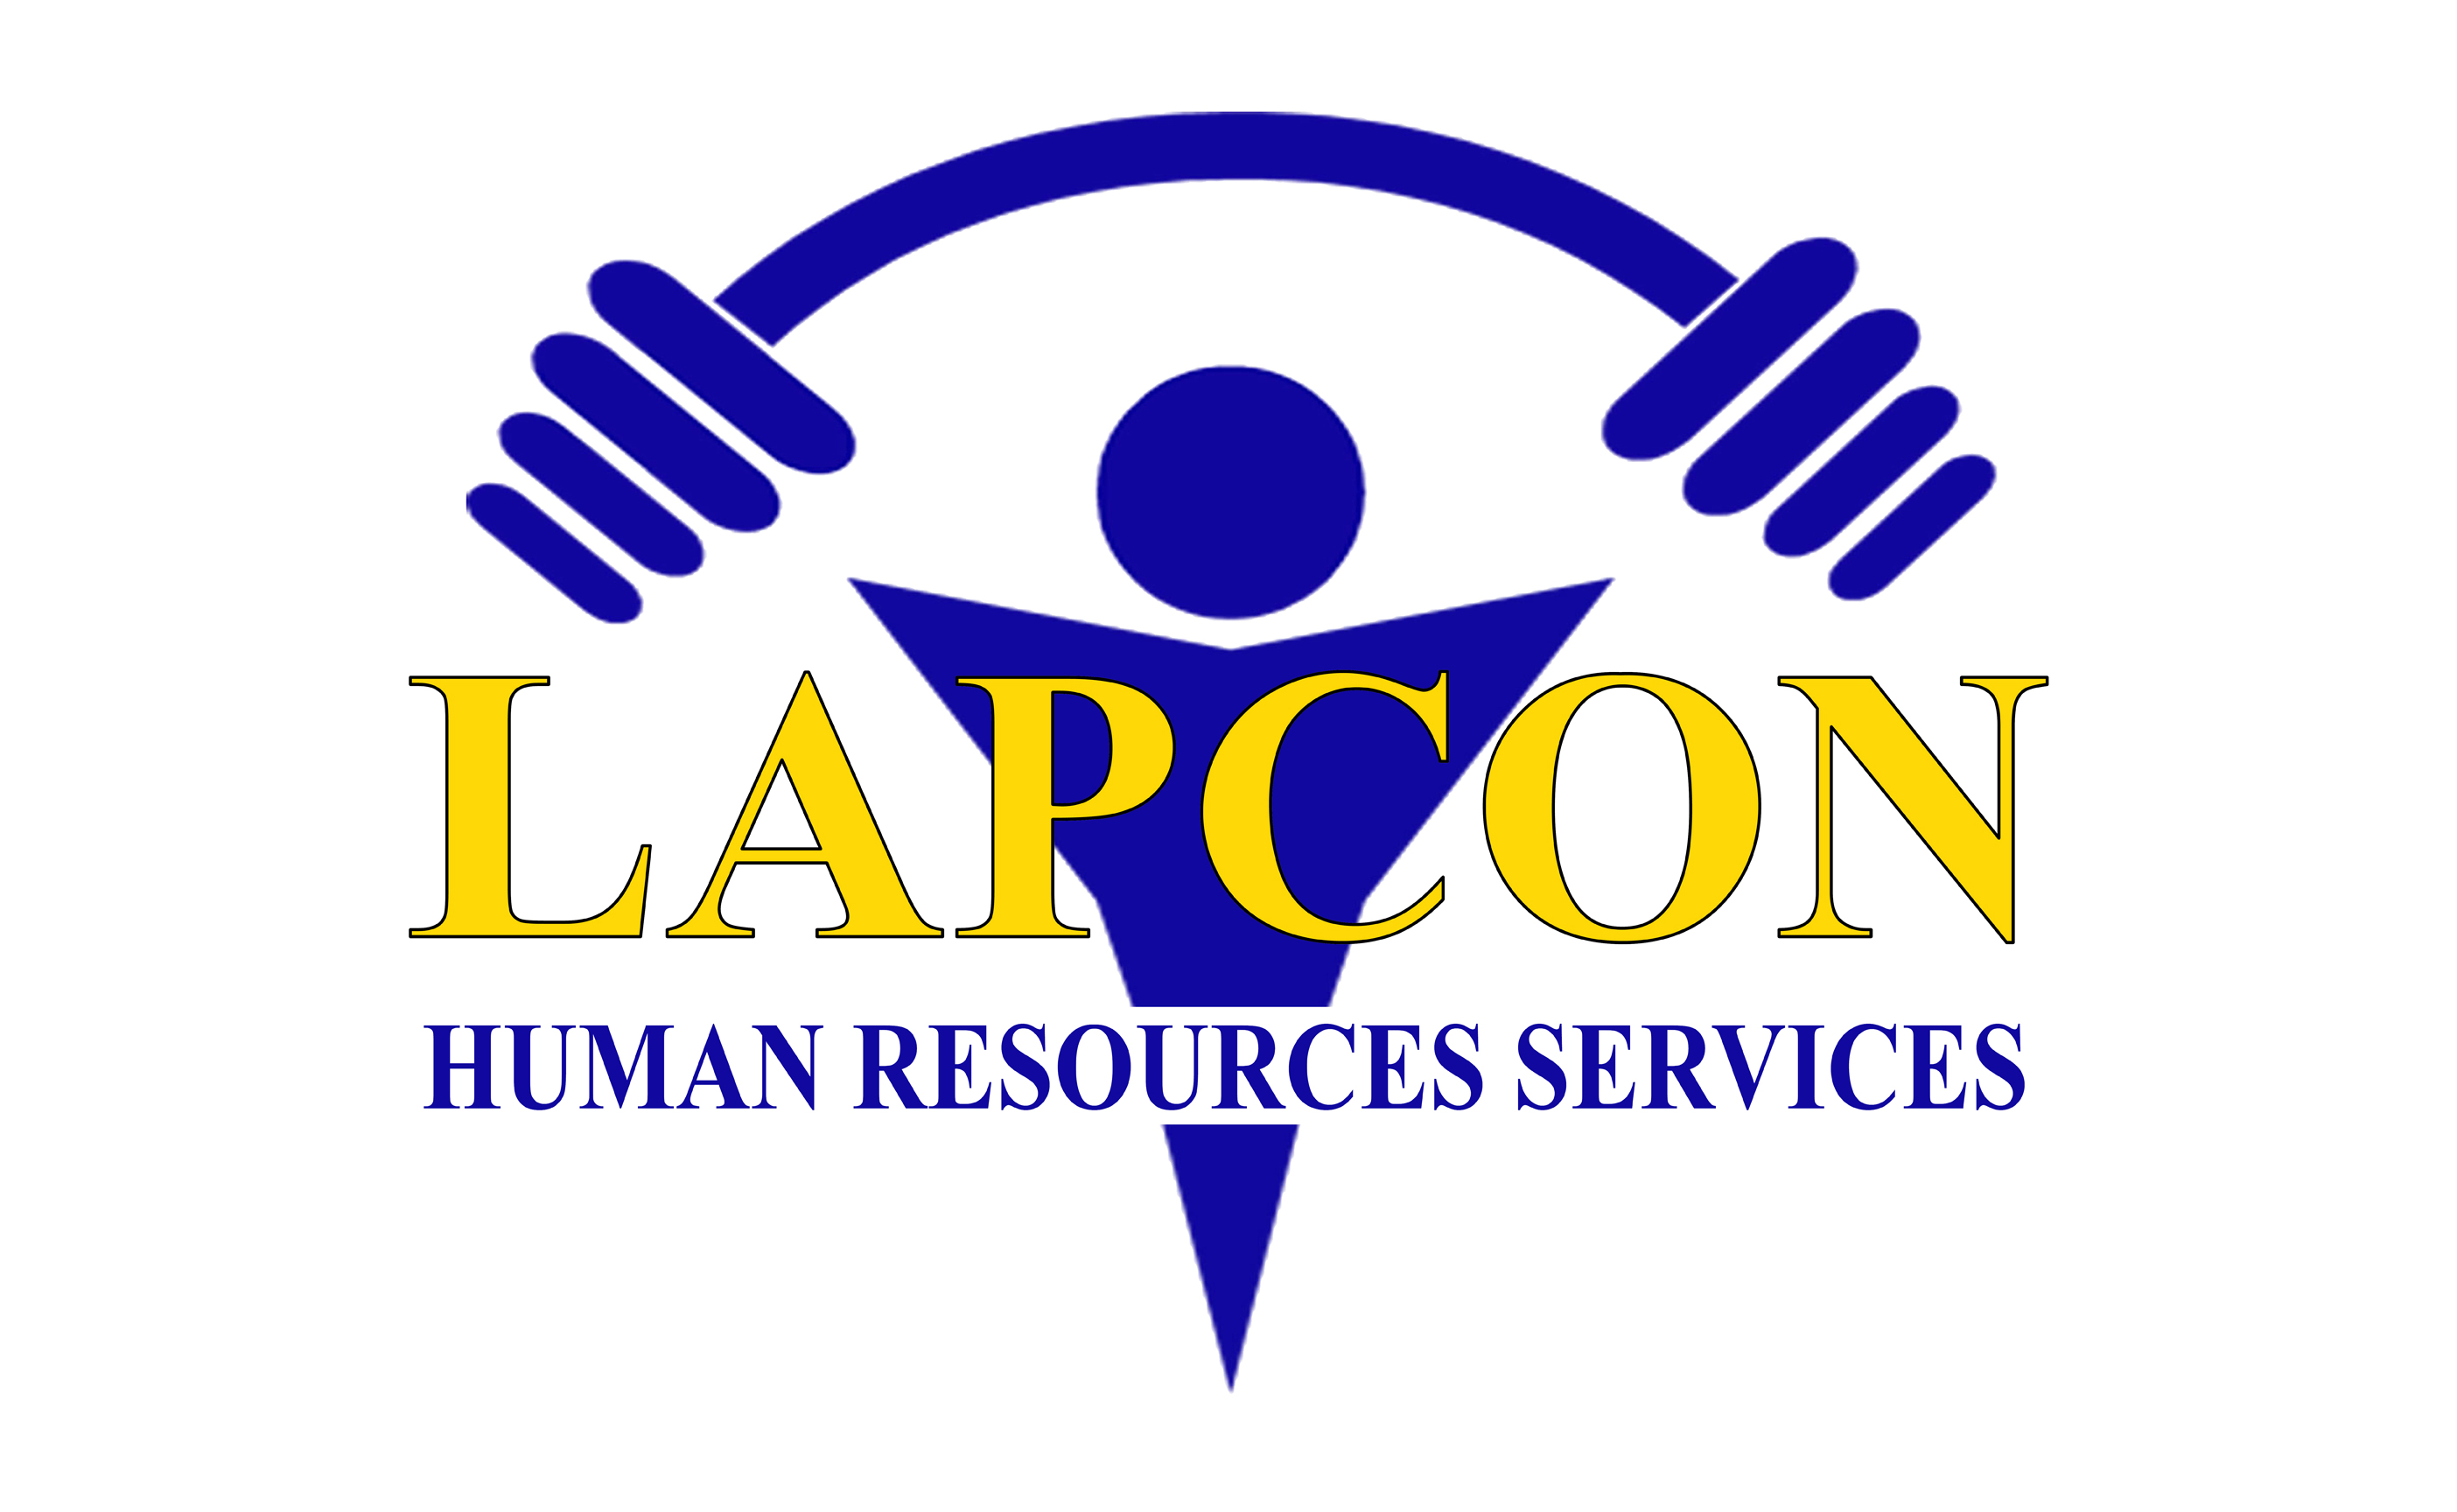 Lapcon Human Resources Services